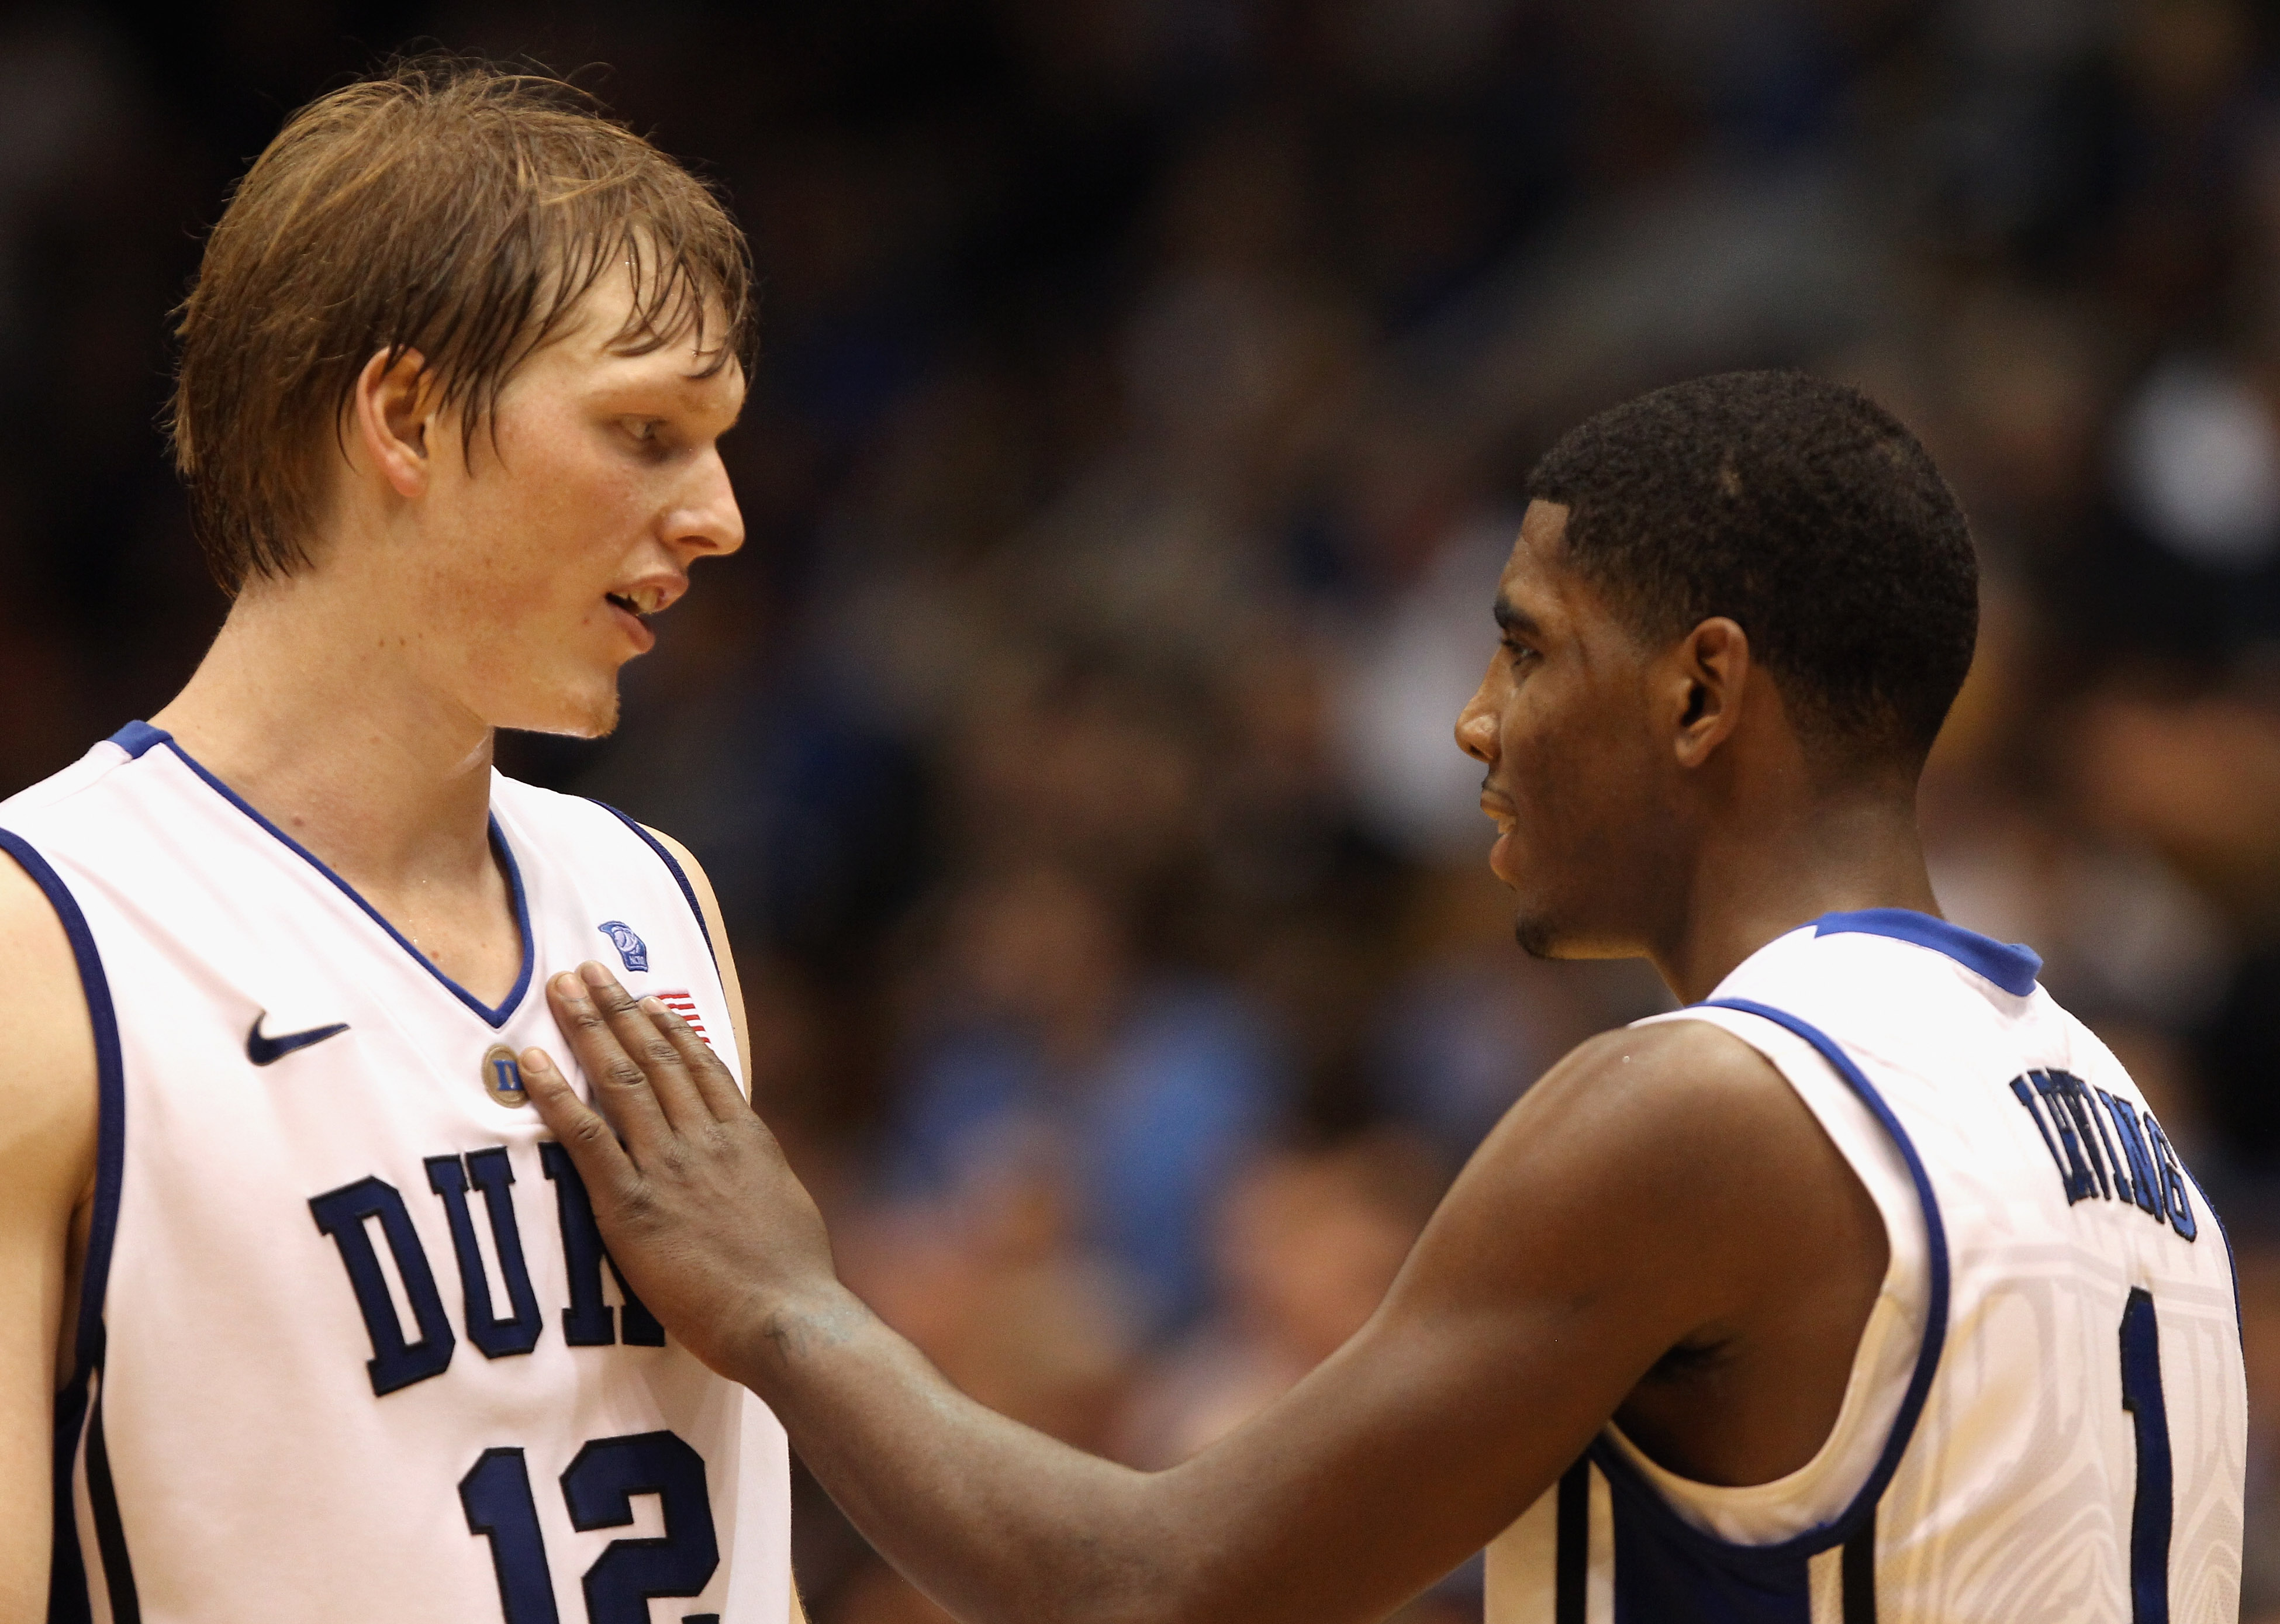 DURHAM, NC - DECEMBER 01:  Kyrie Irving #1 of the Duke Blue Devils and teammate Kyle Singler #12 during their game against the Michigan State Spartans at Cameron Indoor Stadium on December 1, 2010 in Durham, North Carolina.  (Photo by Streeter Lecka/Getty